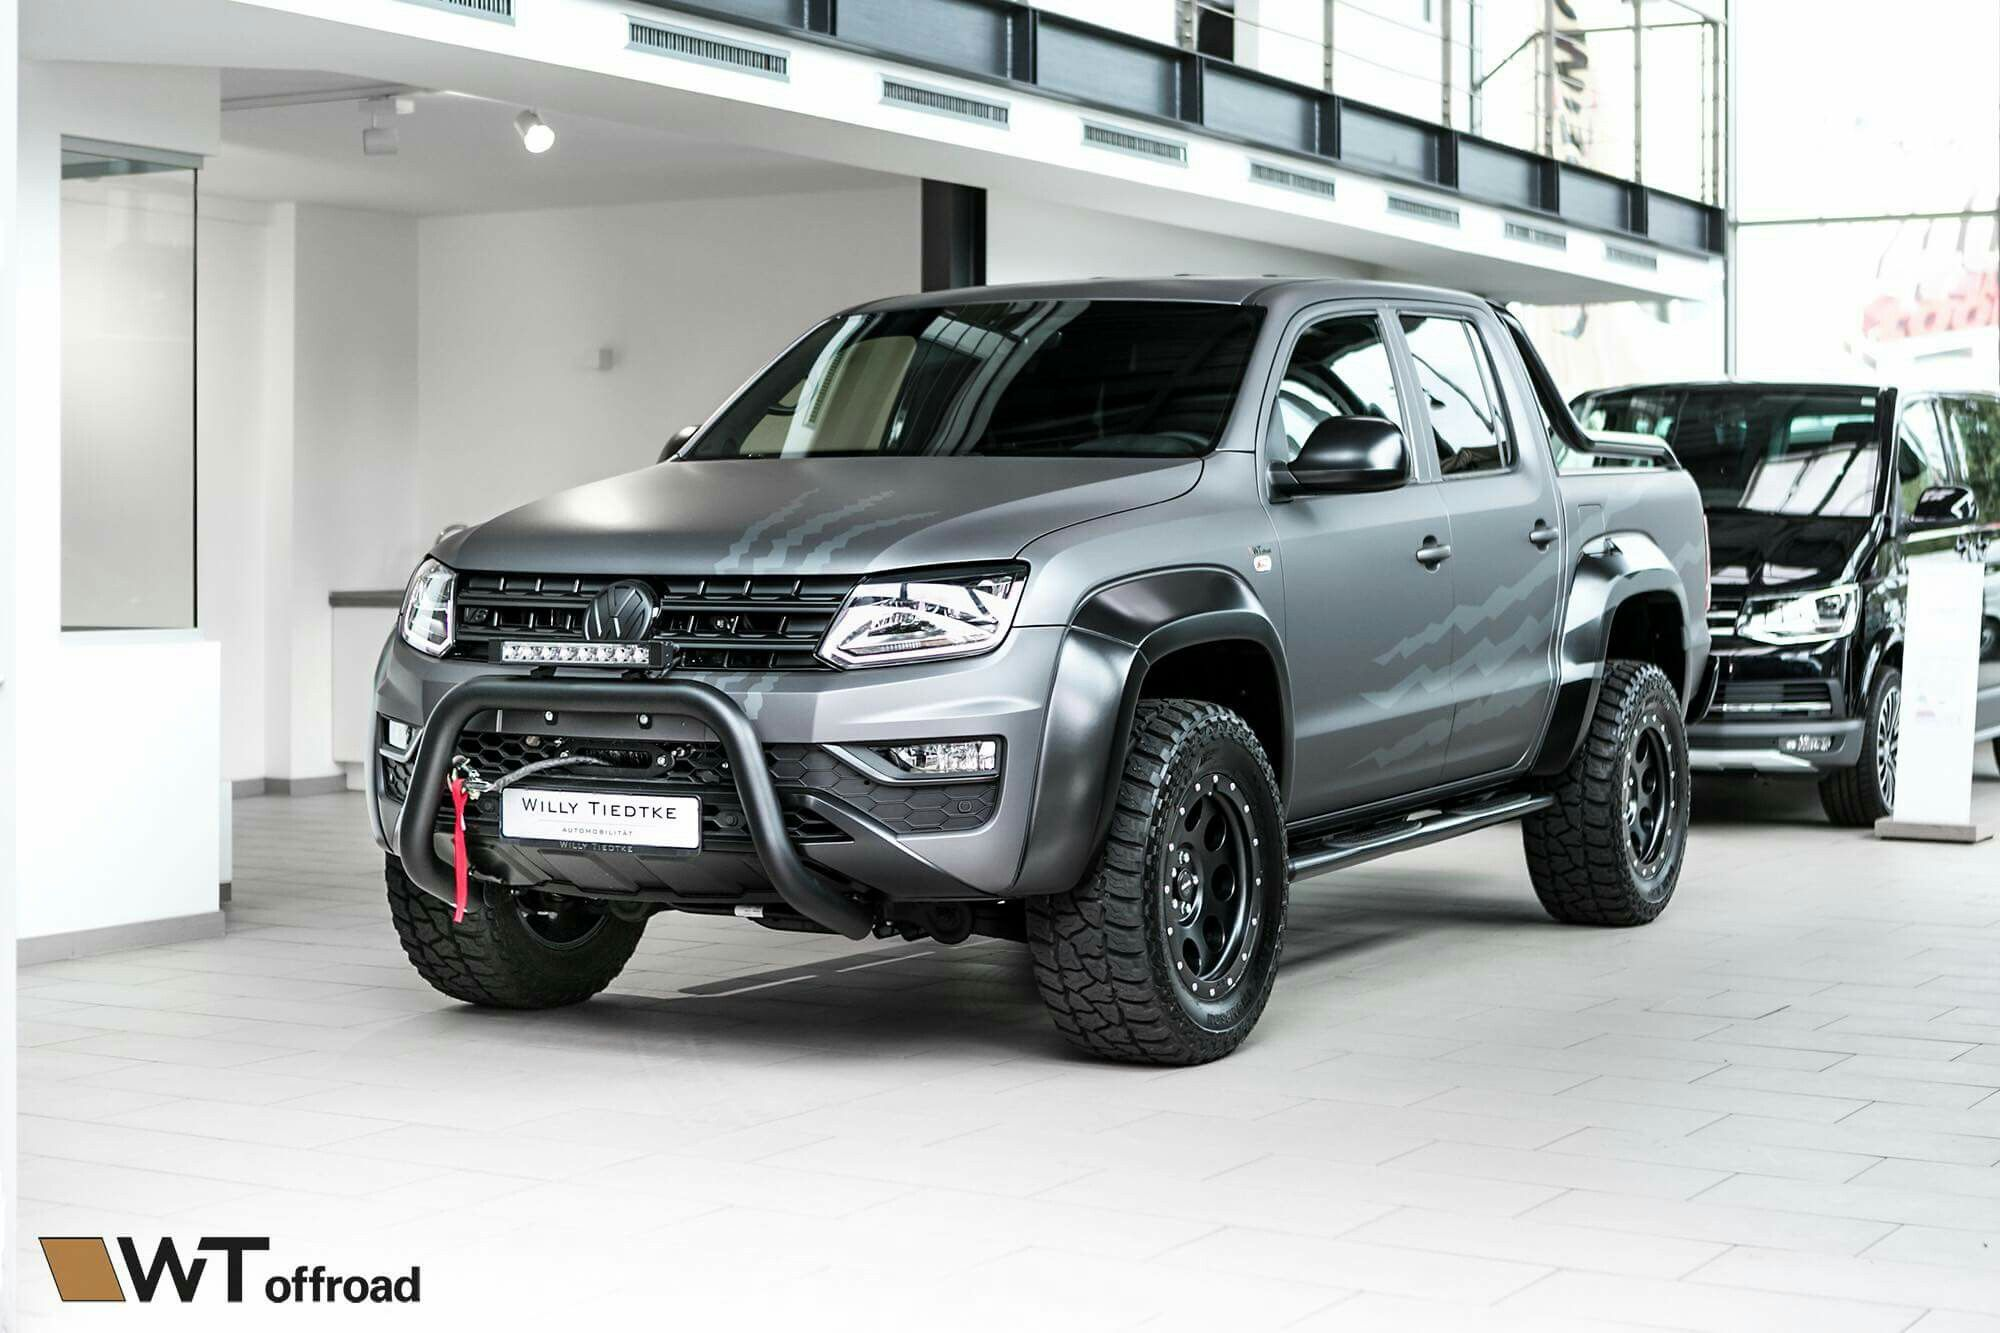 2020 Vw Amarok V6 Redesign Rumors And Release Date In 2020 Vw Amarok Vw Amarok V6 Volkswagen